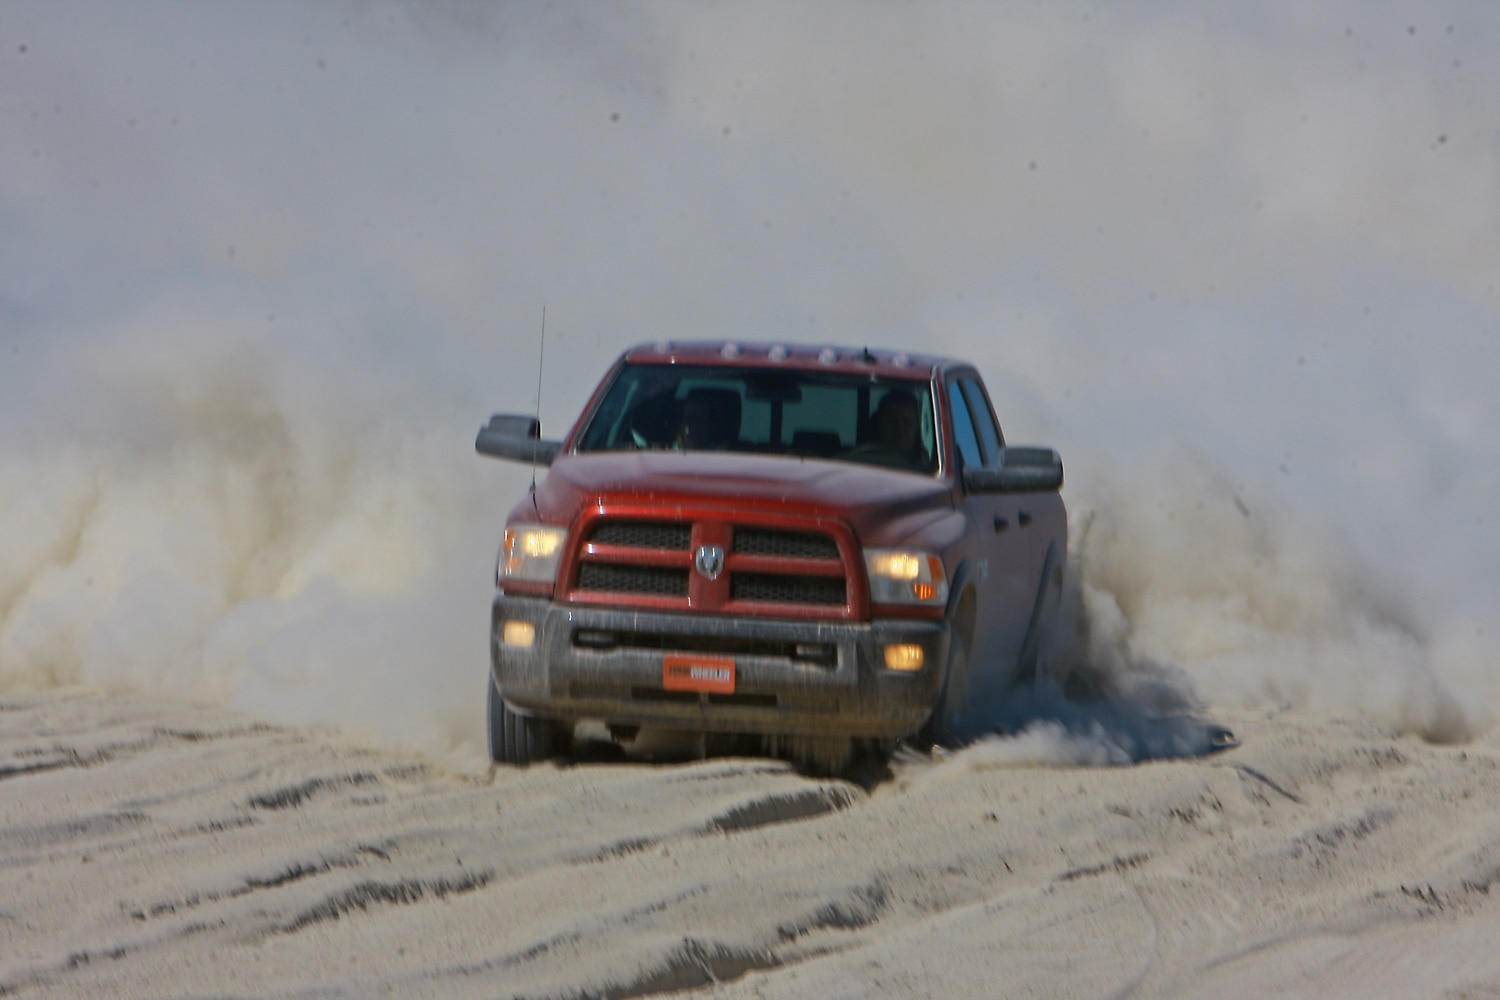 2014 Four Wheeler Of The Year Day 4 Silt Bed   2  2014 Ram 2500 6.4L running through silt bed.JPG